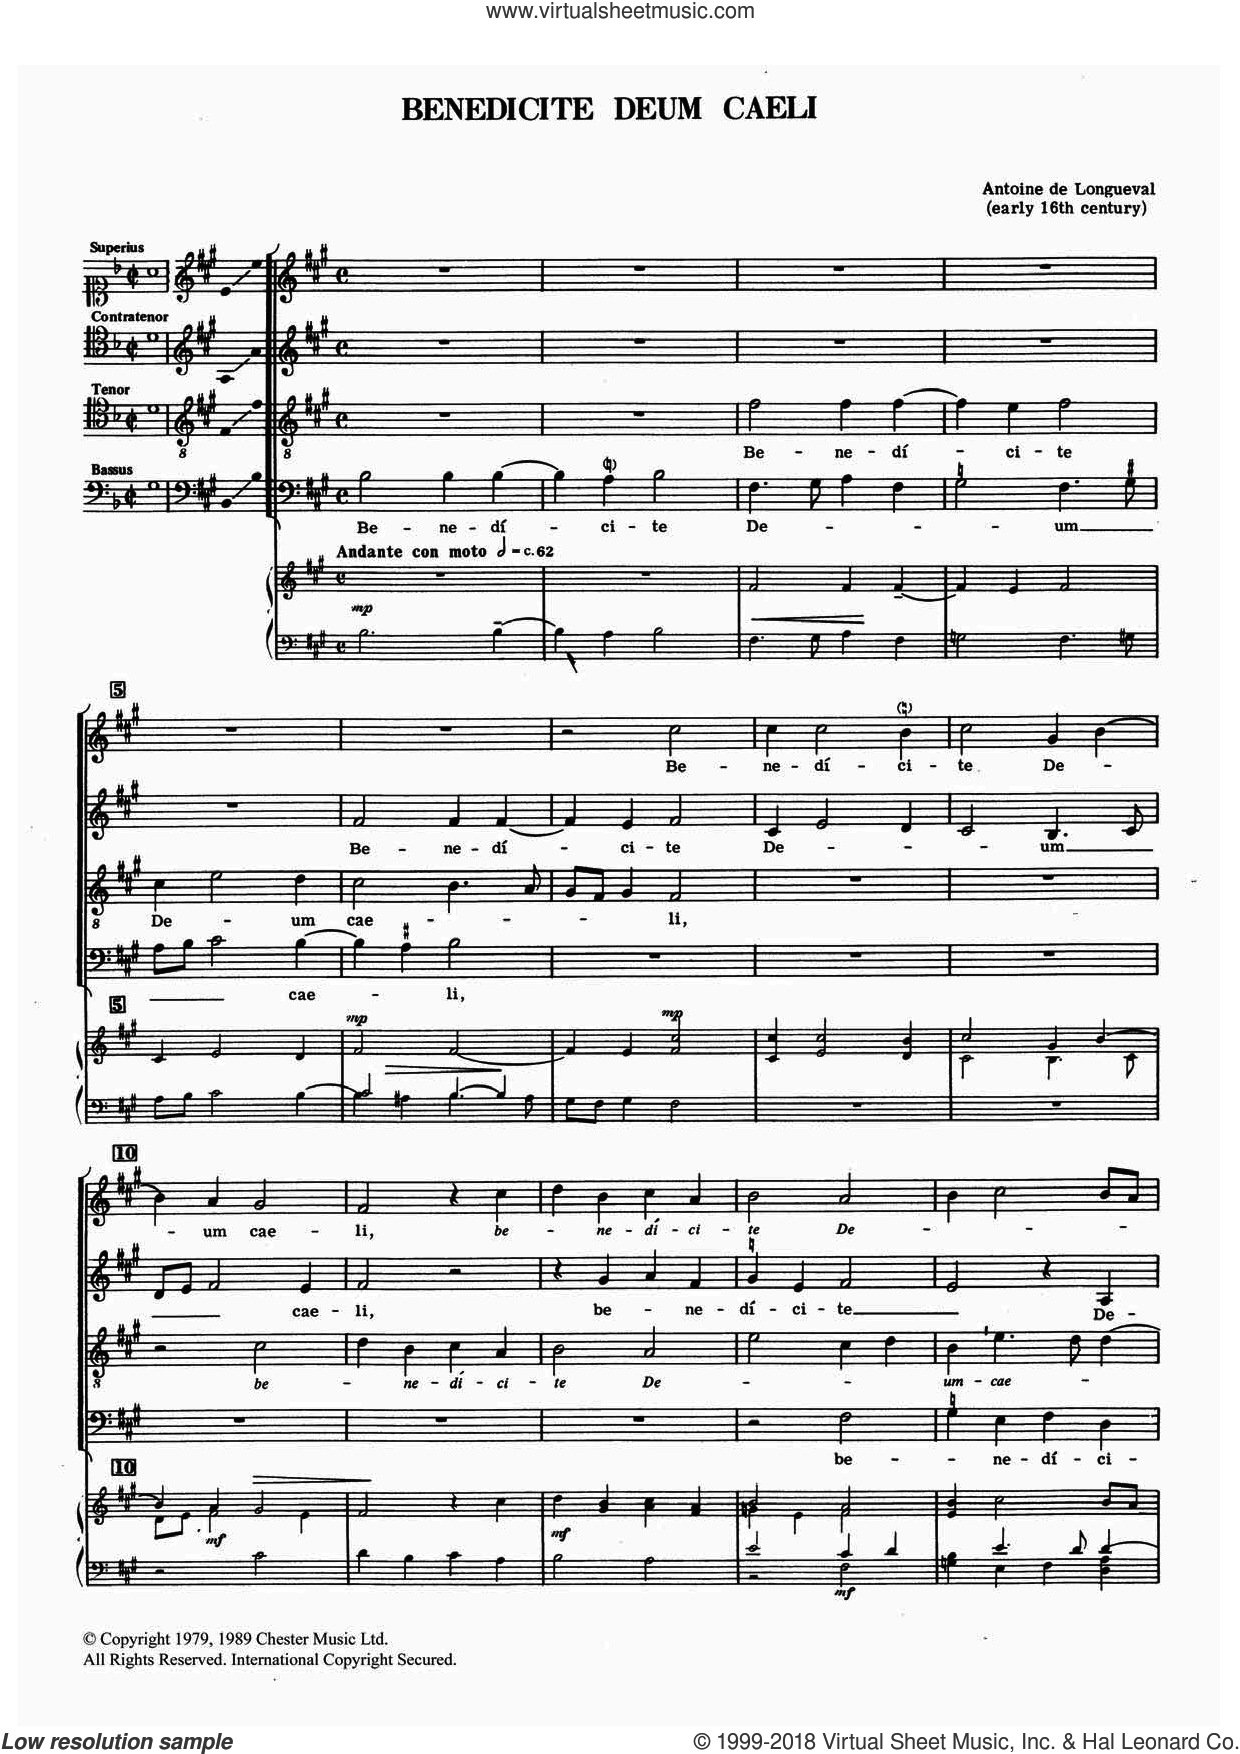 Benedicte Deum Caeli sheet music for choir and piano by Antoine de Longueval. Score Image Preview.